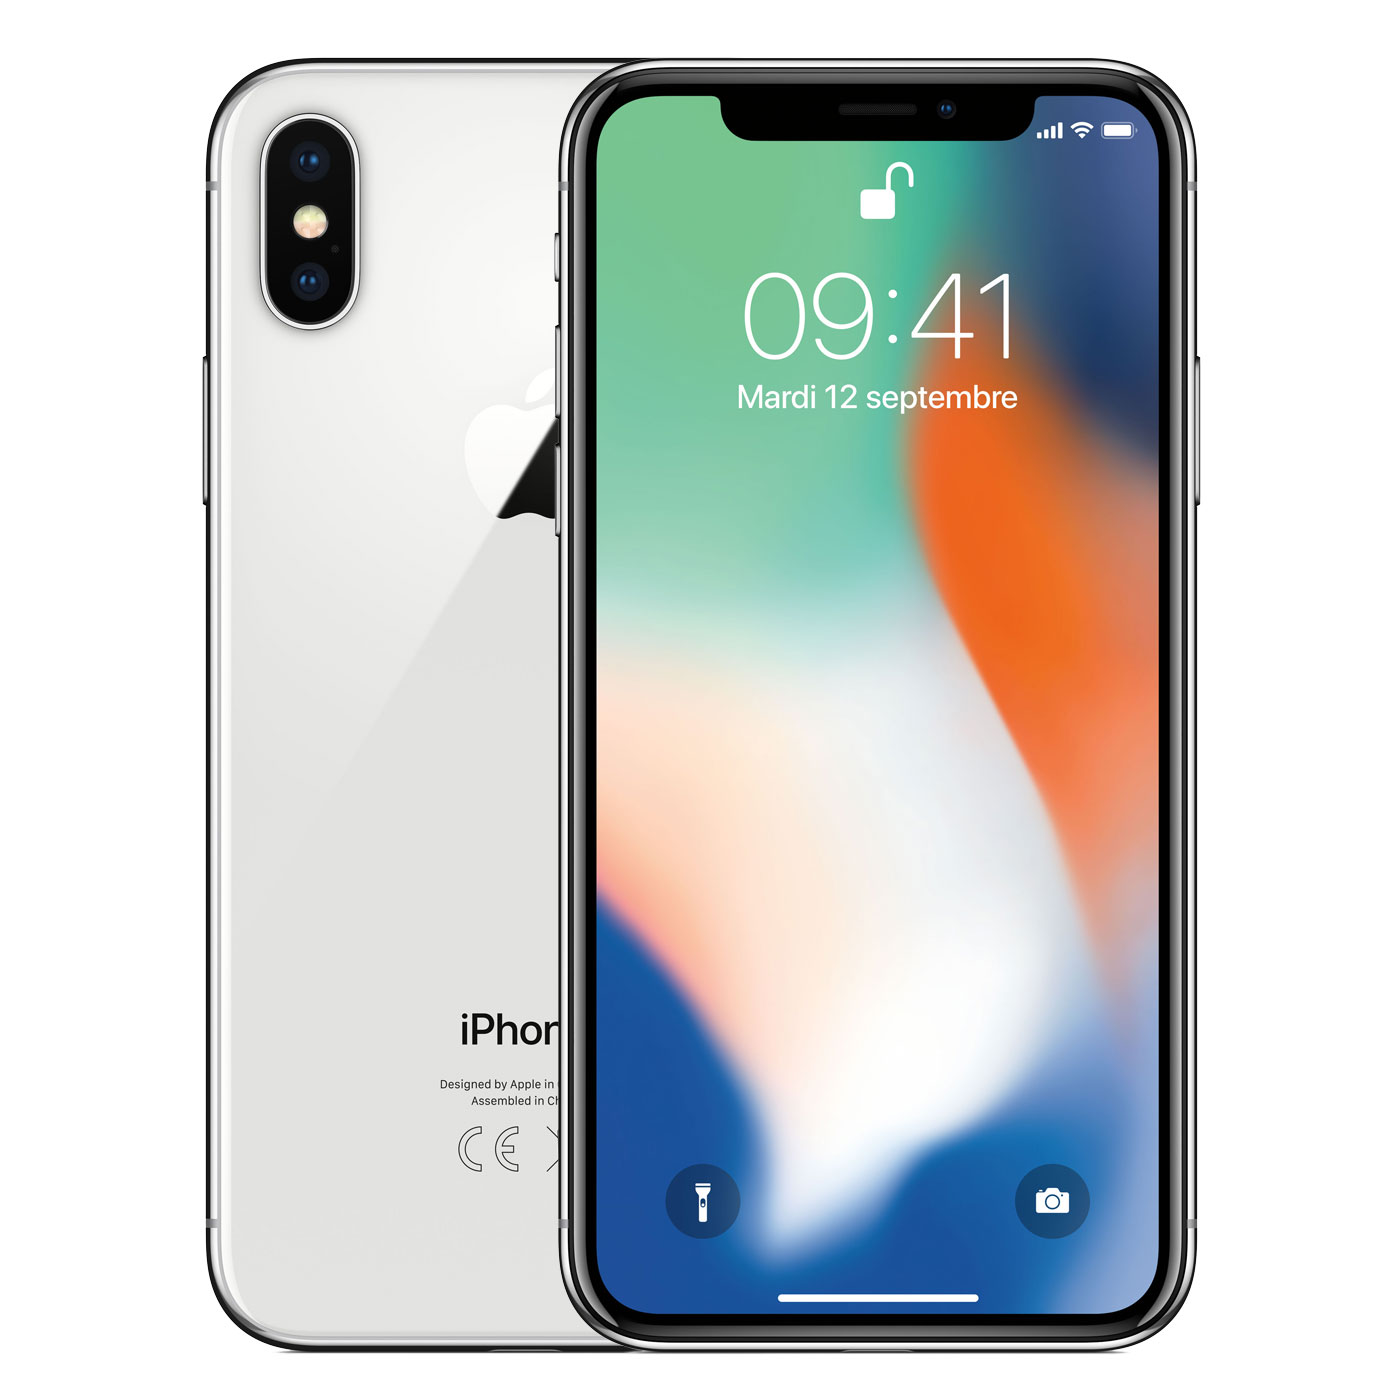 "Mobile & smartphone Apple iPhone X 64 Go Argent Smartphone 4G-LTE Advanced IP67 - Apple A11 Bionic Hexa-Core - RAM 3 Go - Ecran Super Retina 5.8"" 1125 x 2436 - 64 Go - NFC/Bluetooth 5.0 - iOS 11"